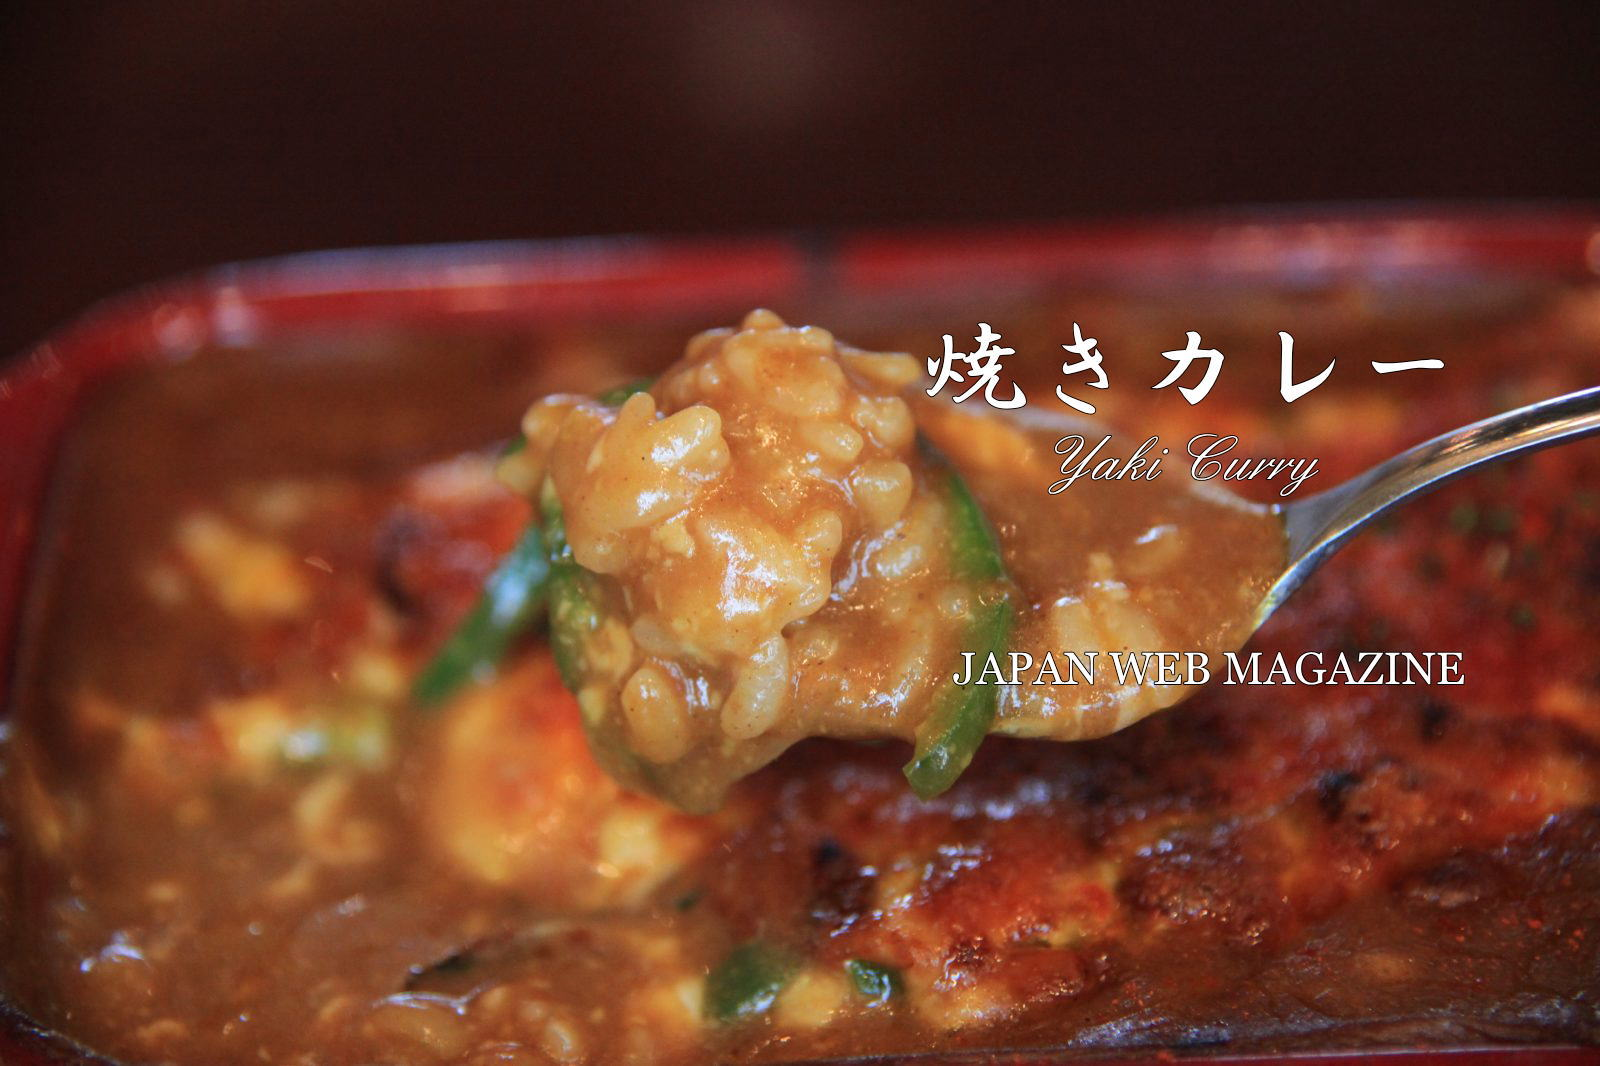 Yaki curry